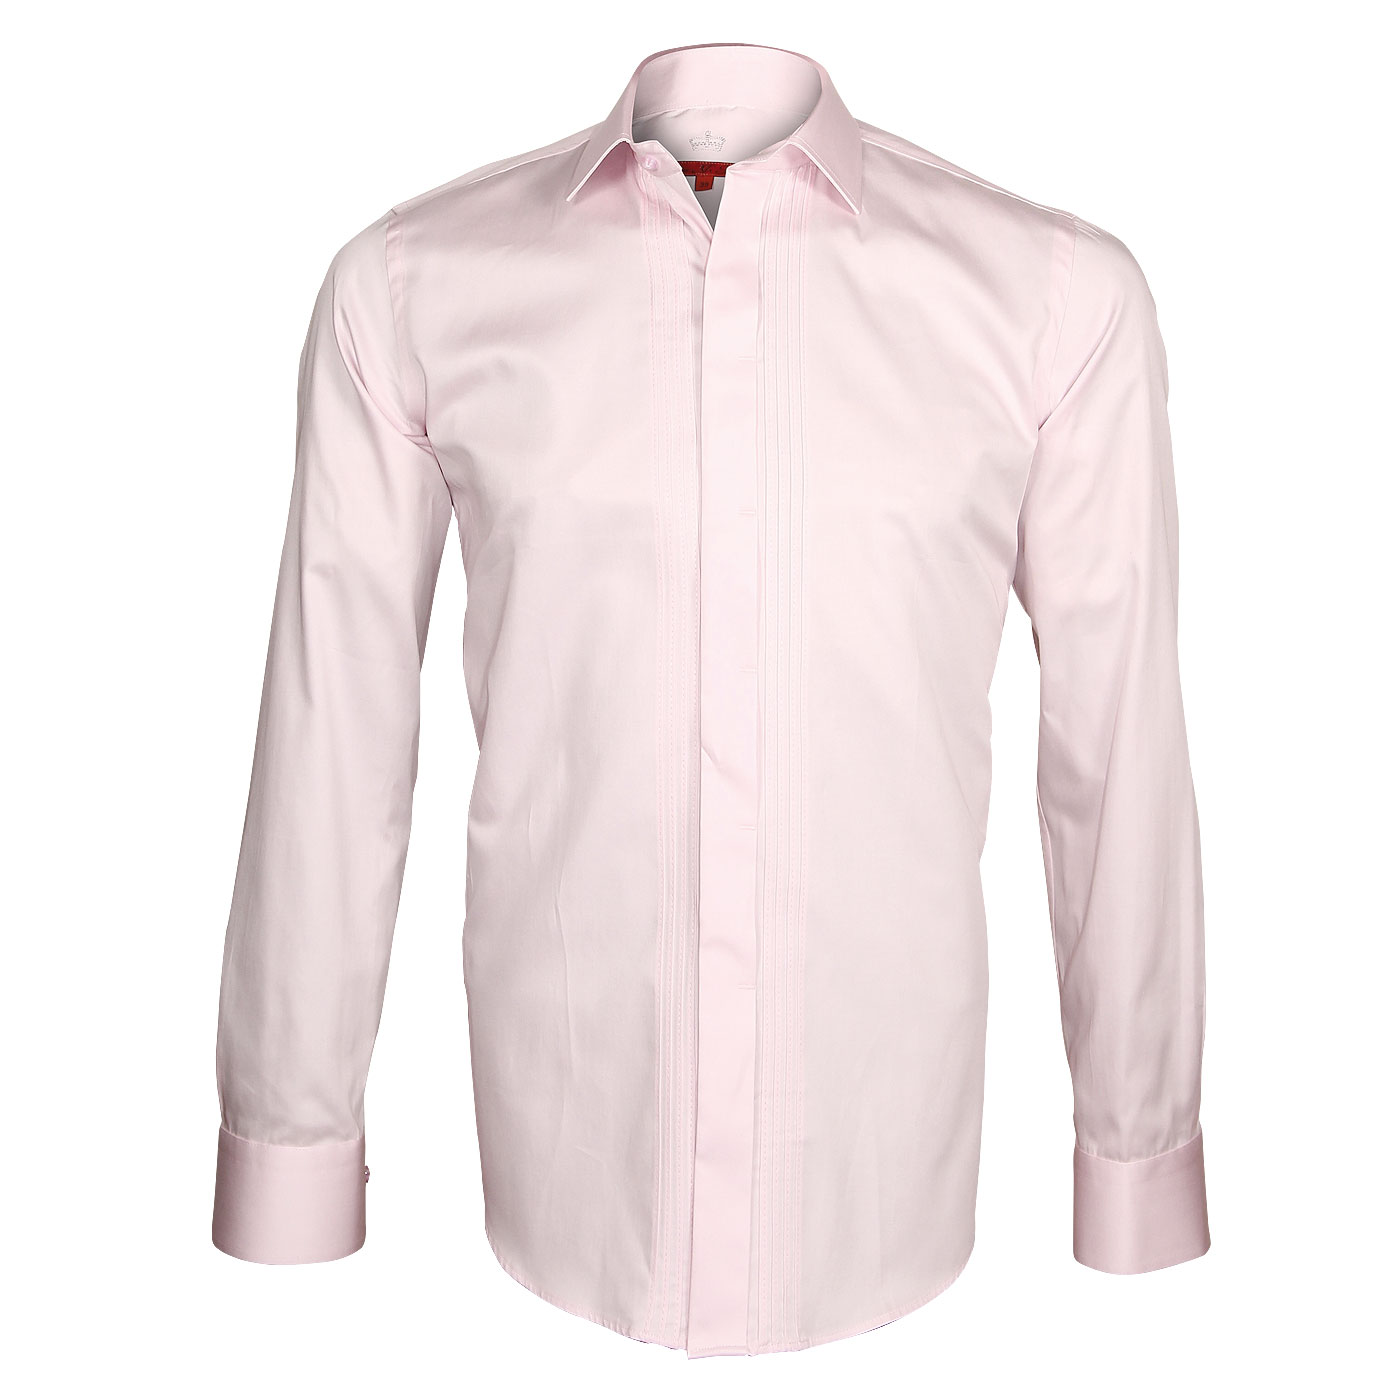 Dress Shirt with Bowtie for Ceremony & Weddings